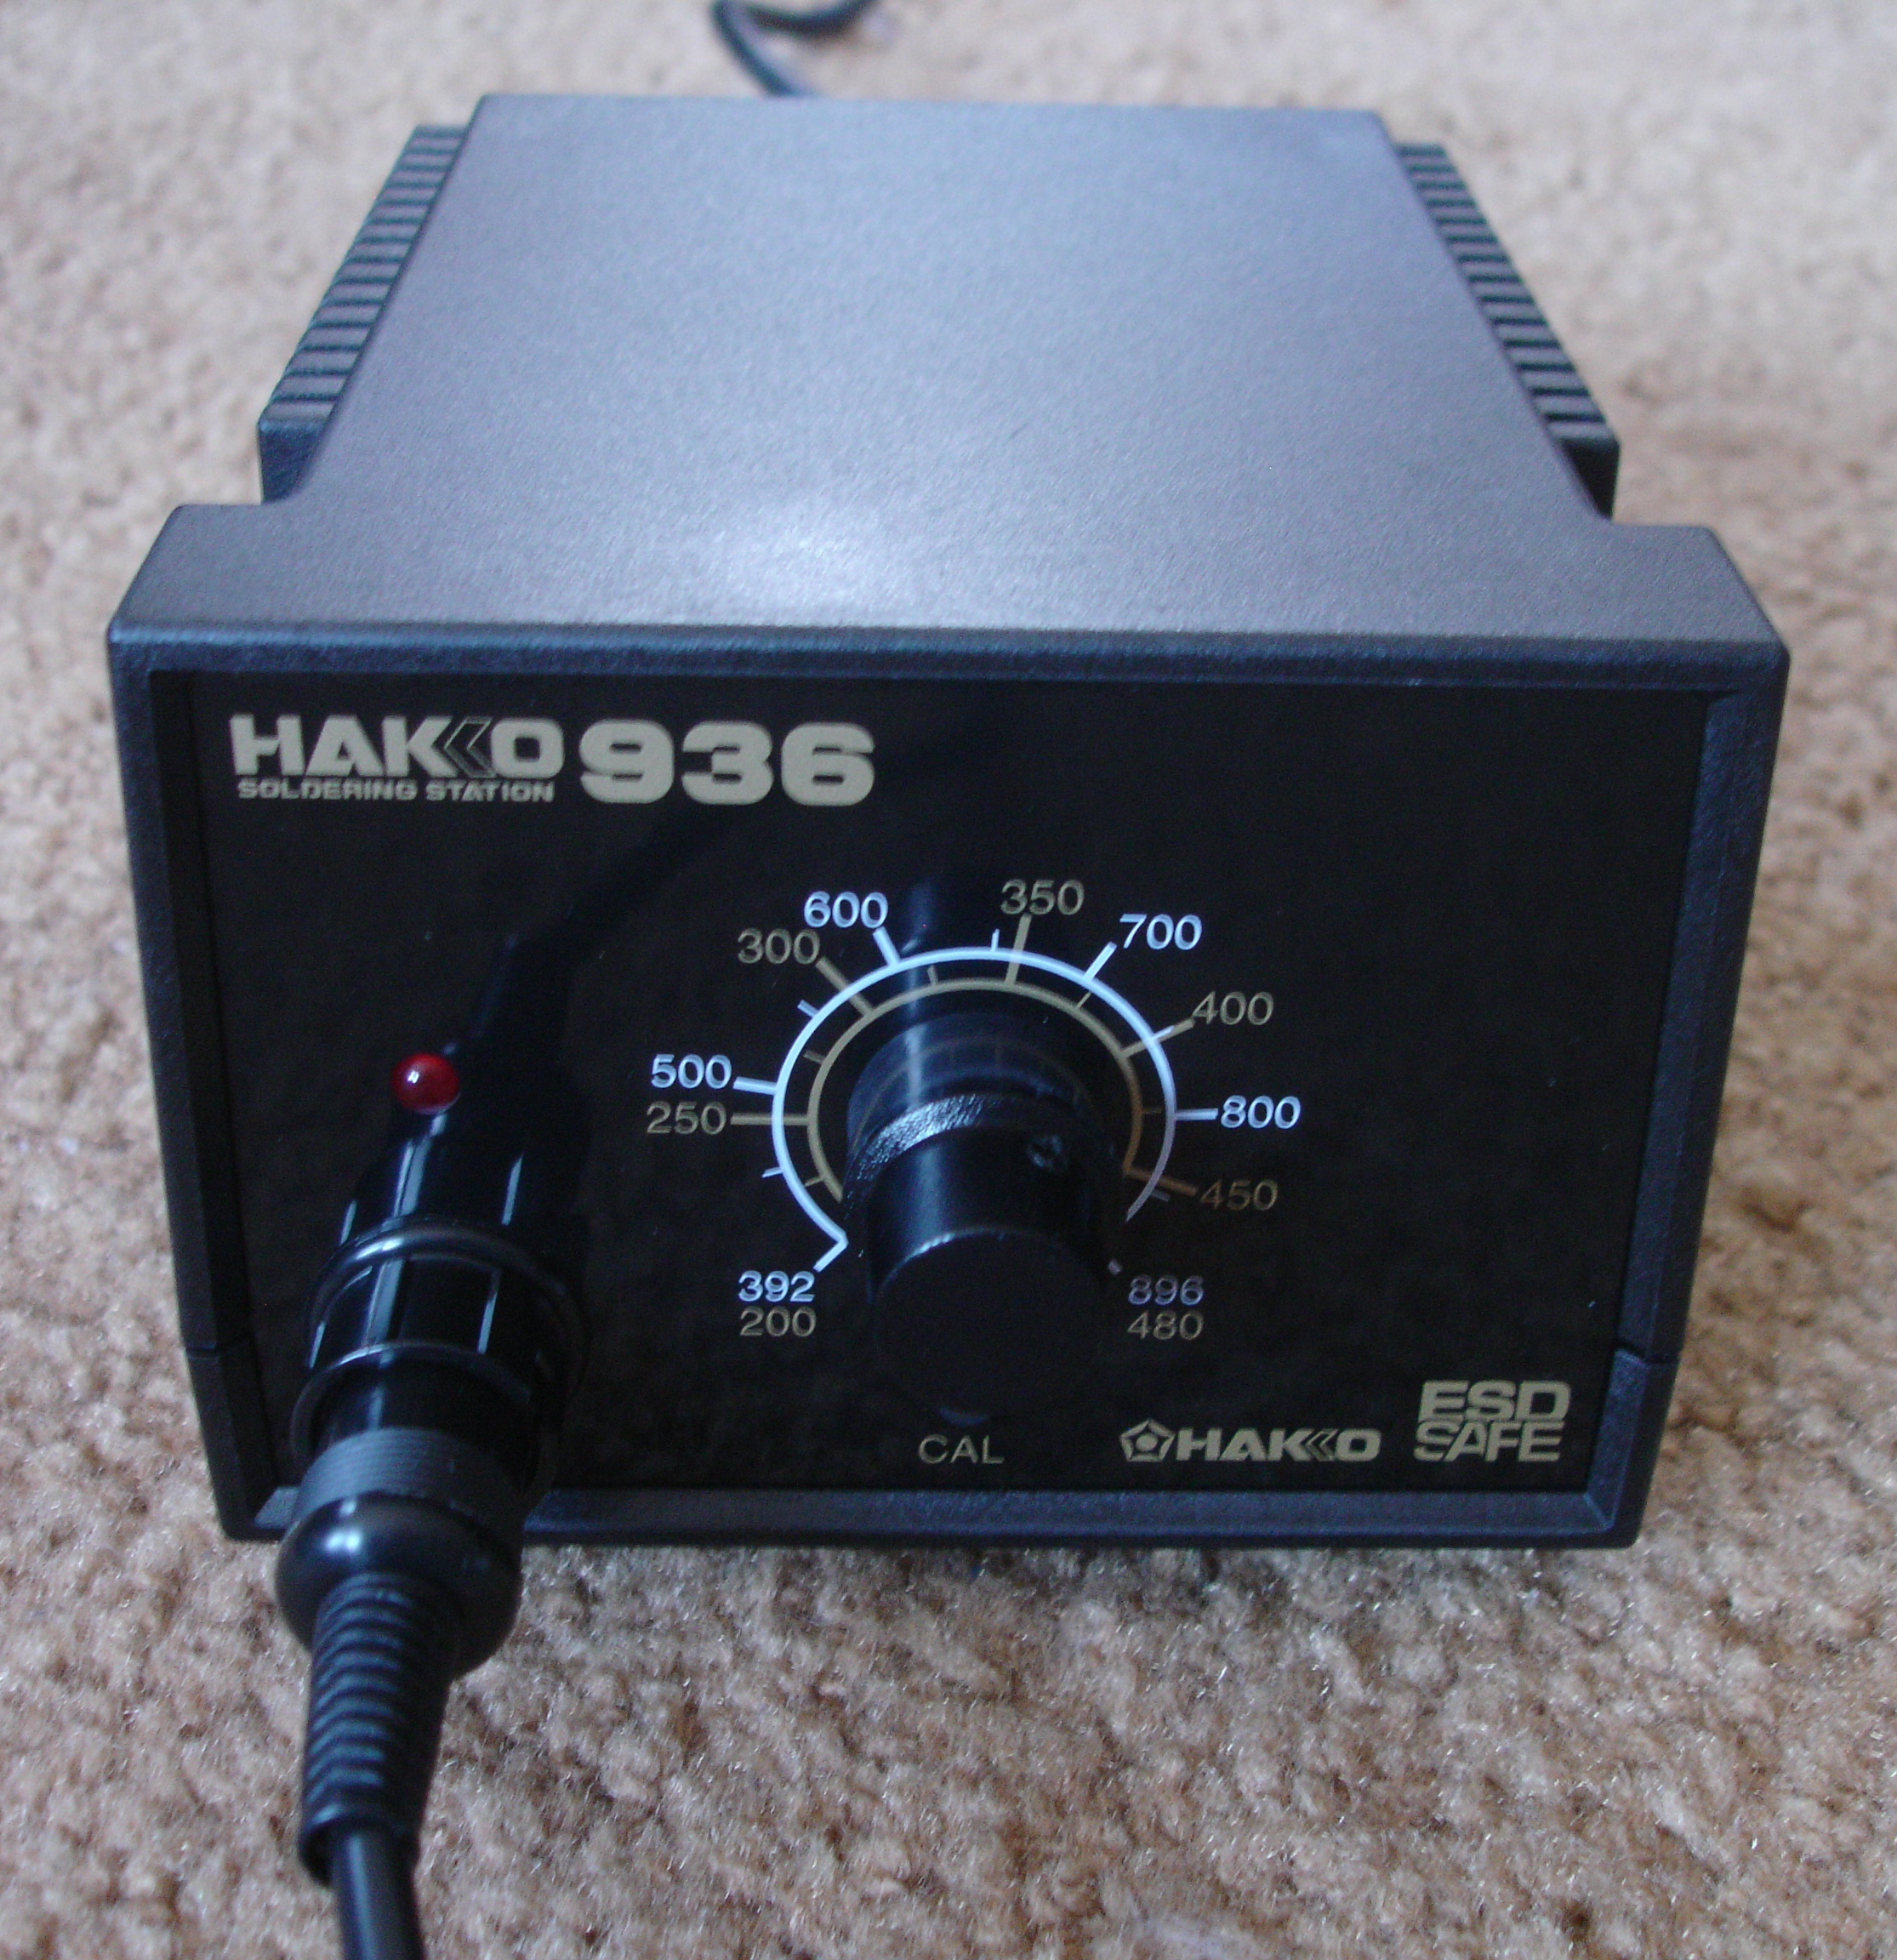 File:Hakko 936 soldering station plug connected.jpeg